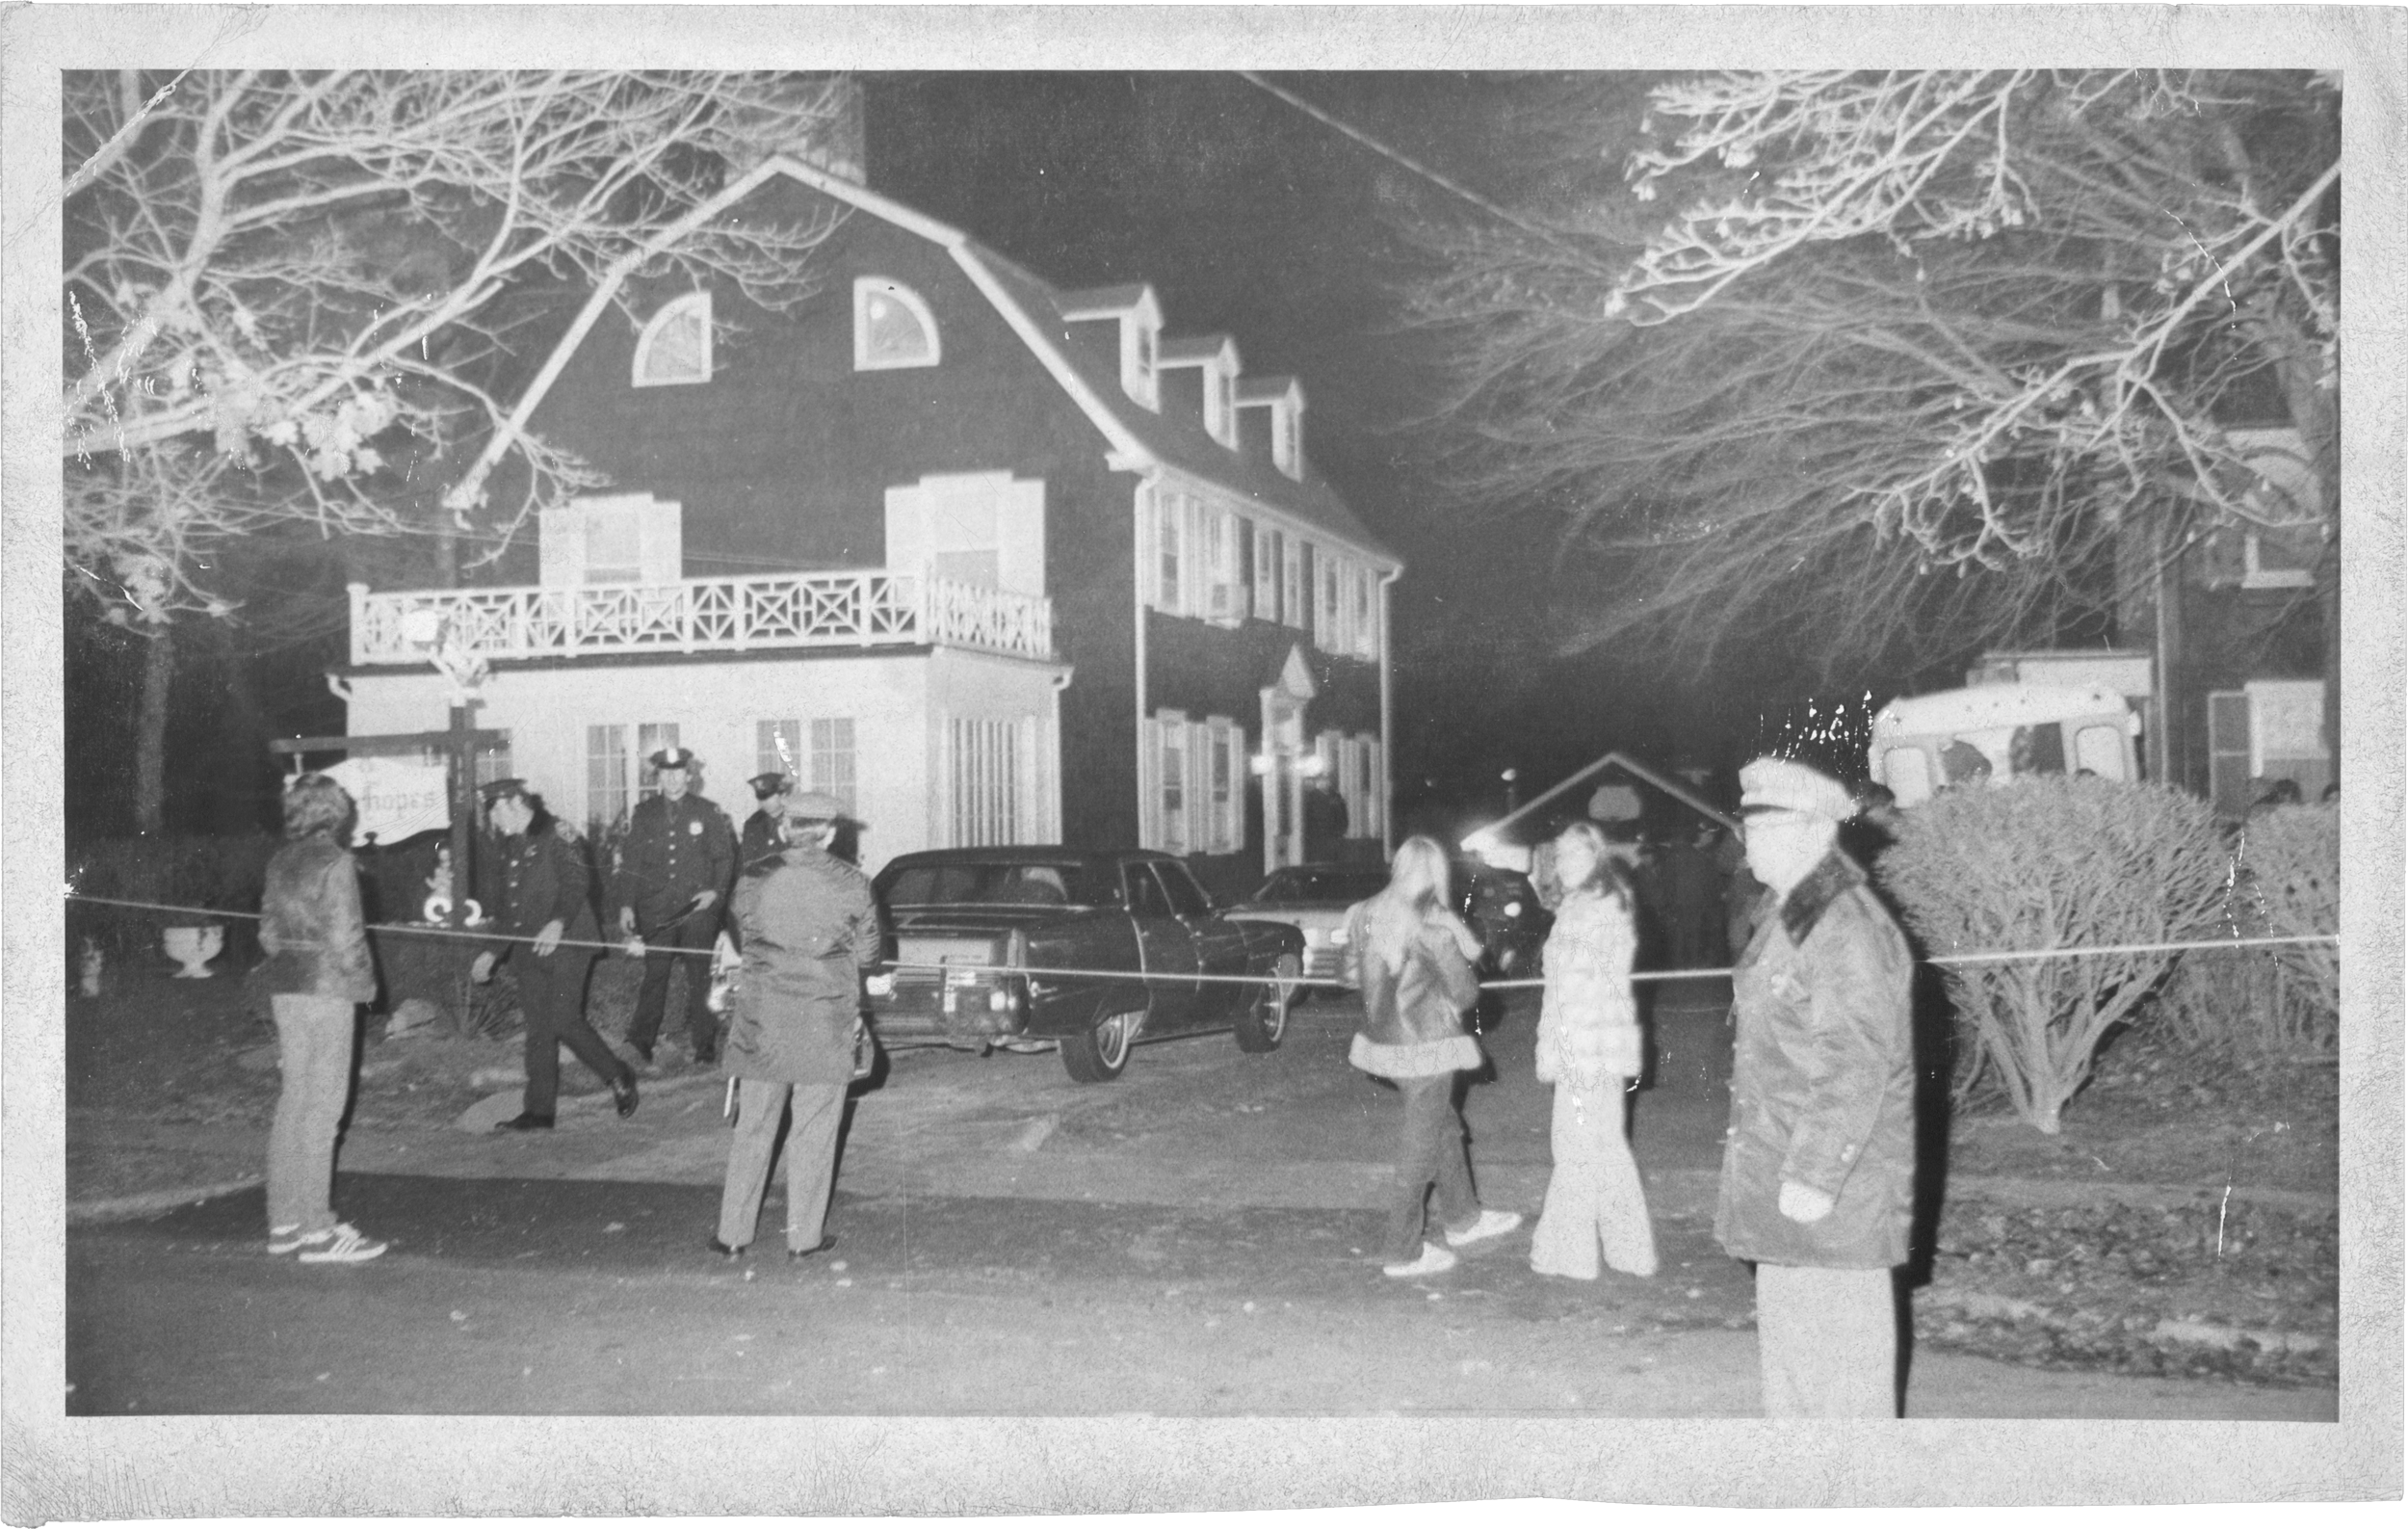 Amityville Real or Hoax